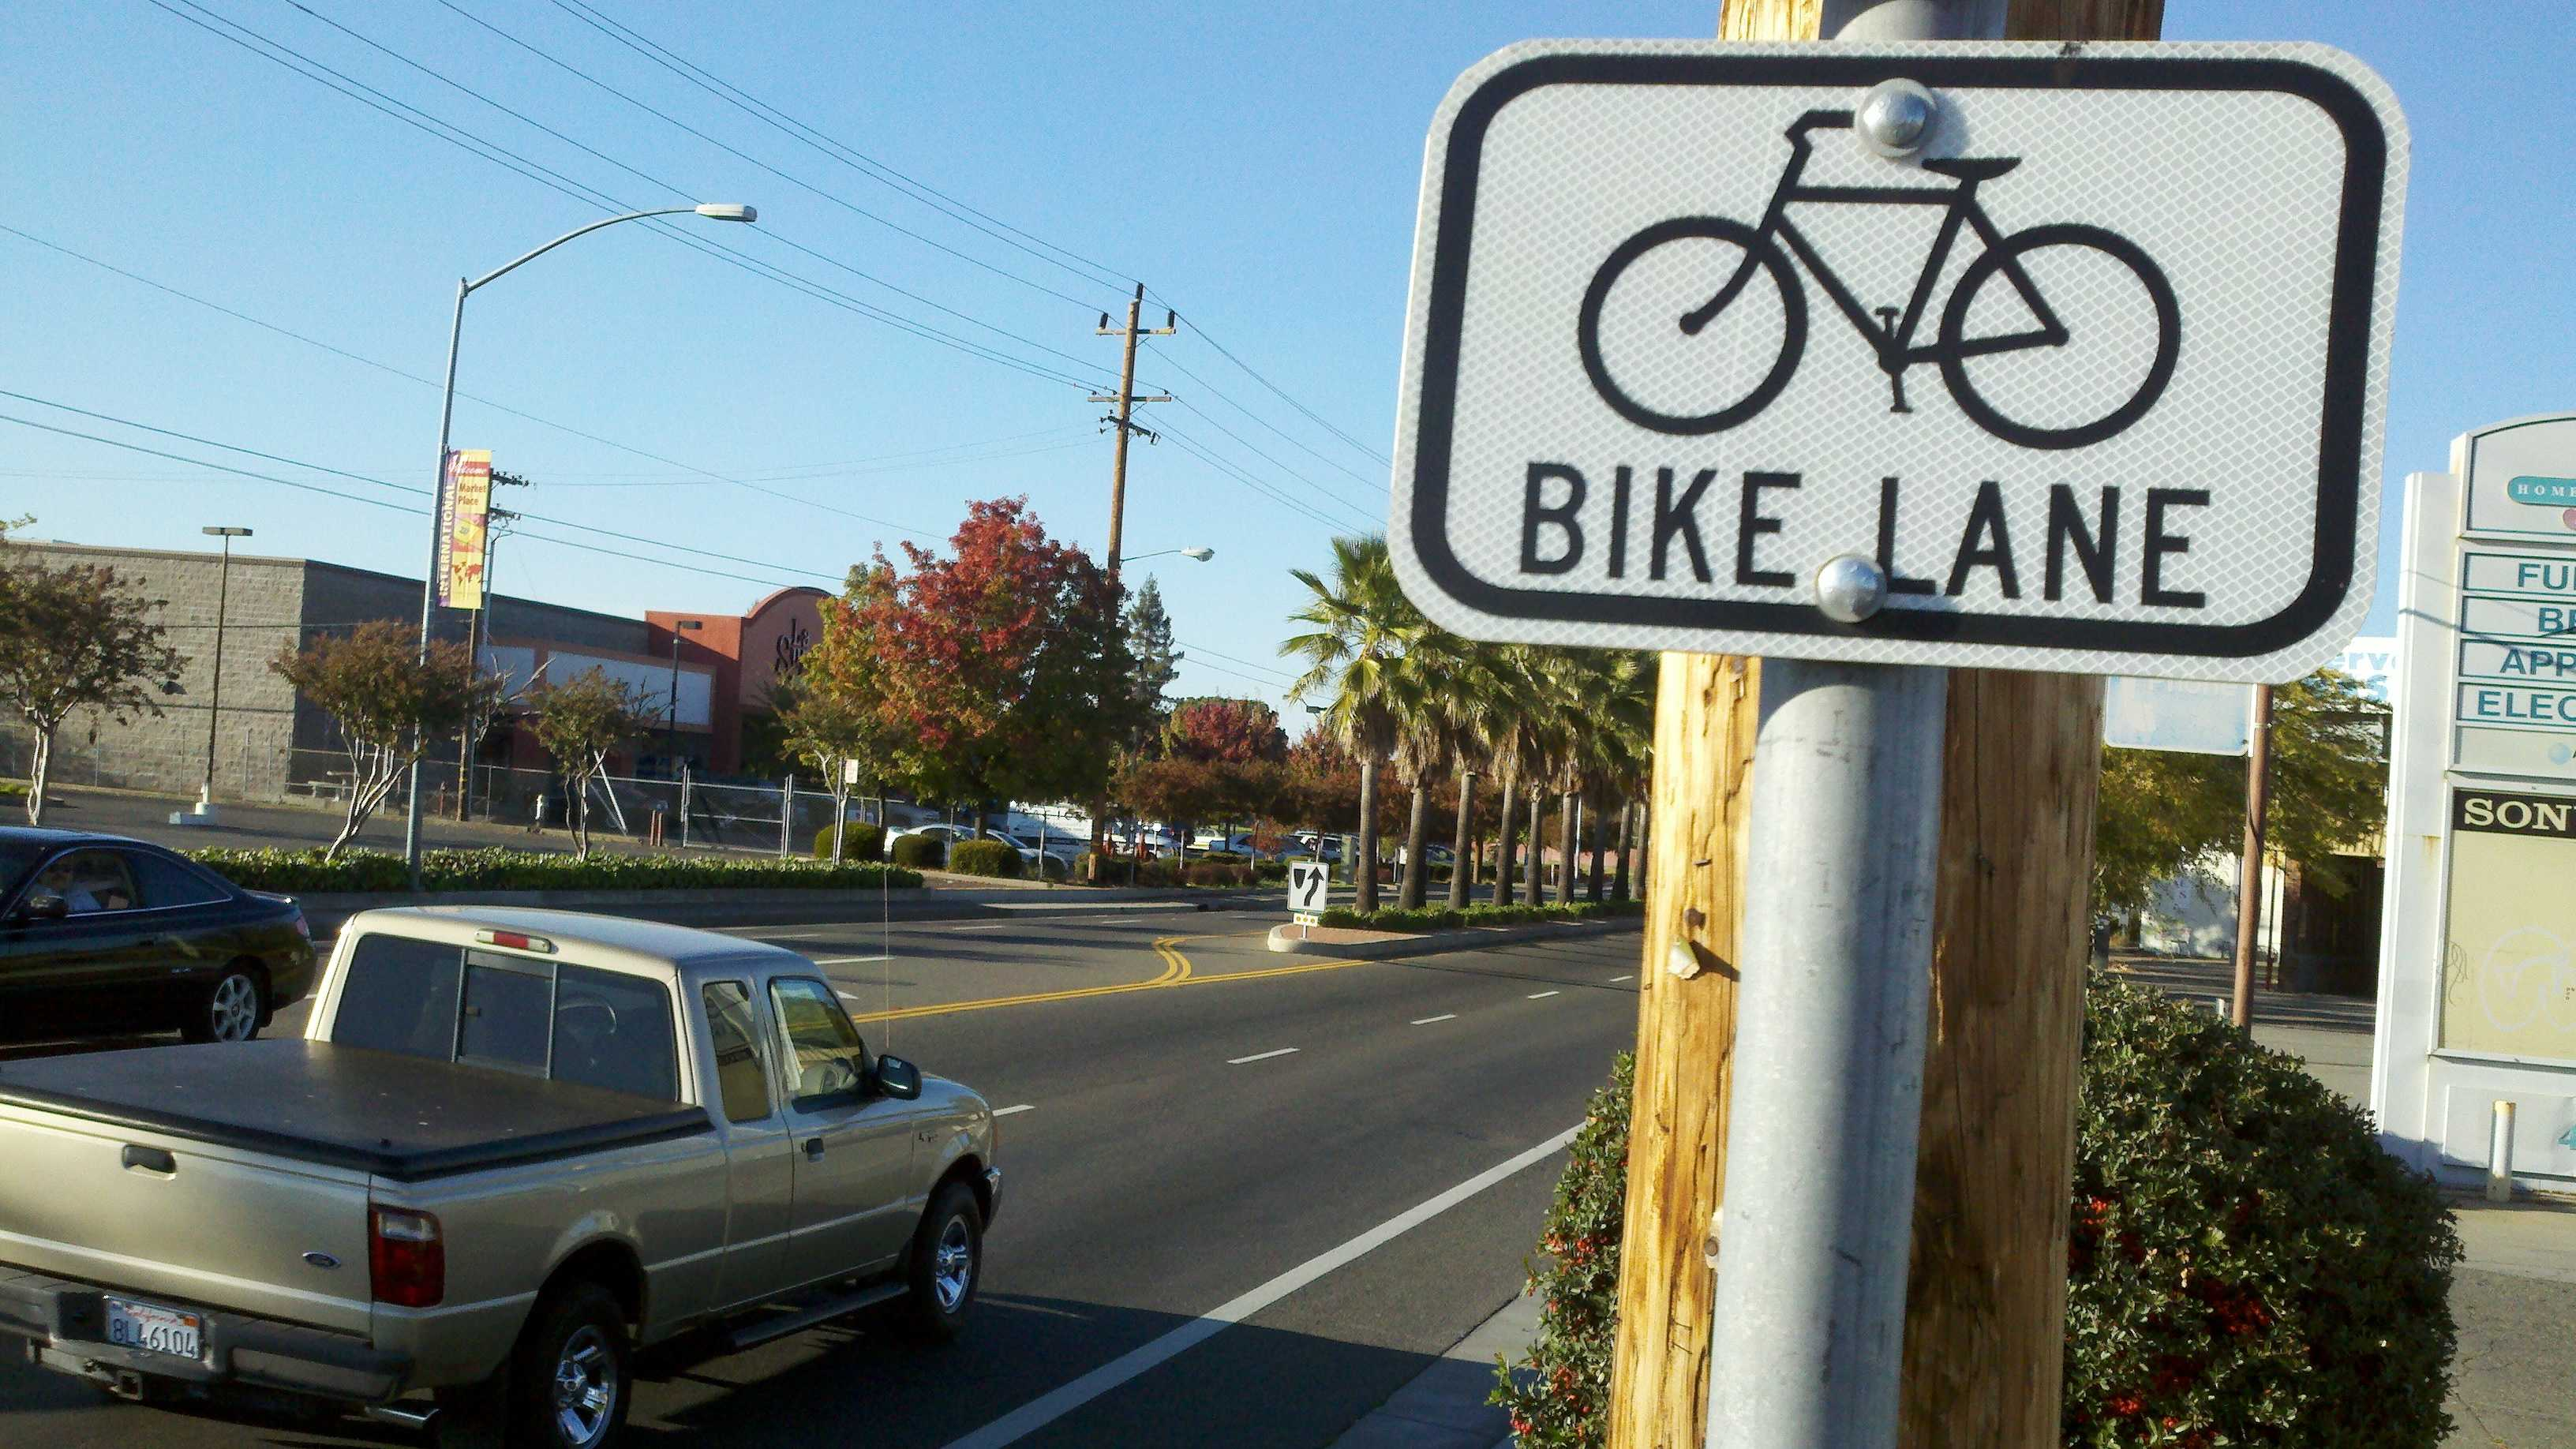 Stockton Boulevard has bike lanes where last night's deadly hit-and-run crash took place, but cycling advocates say it is still one of the city's most dangerous areas.